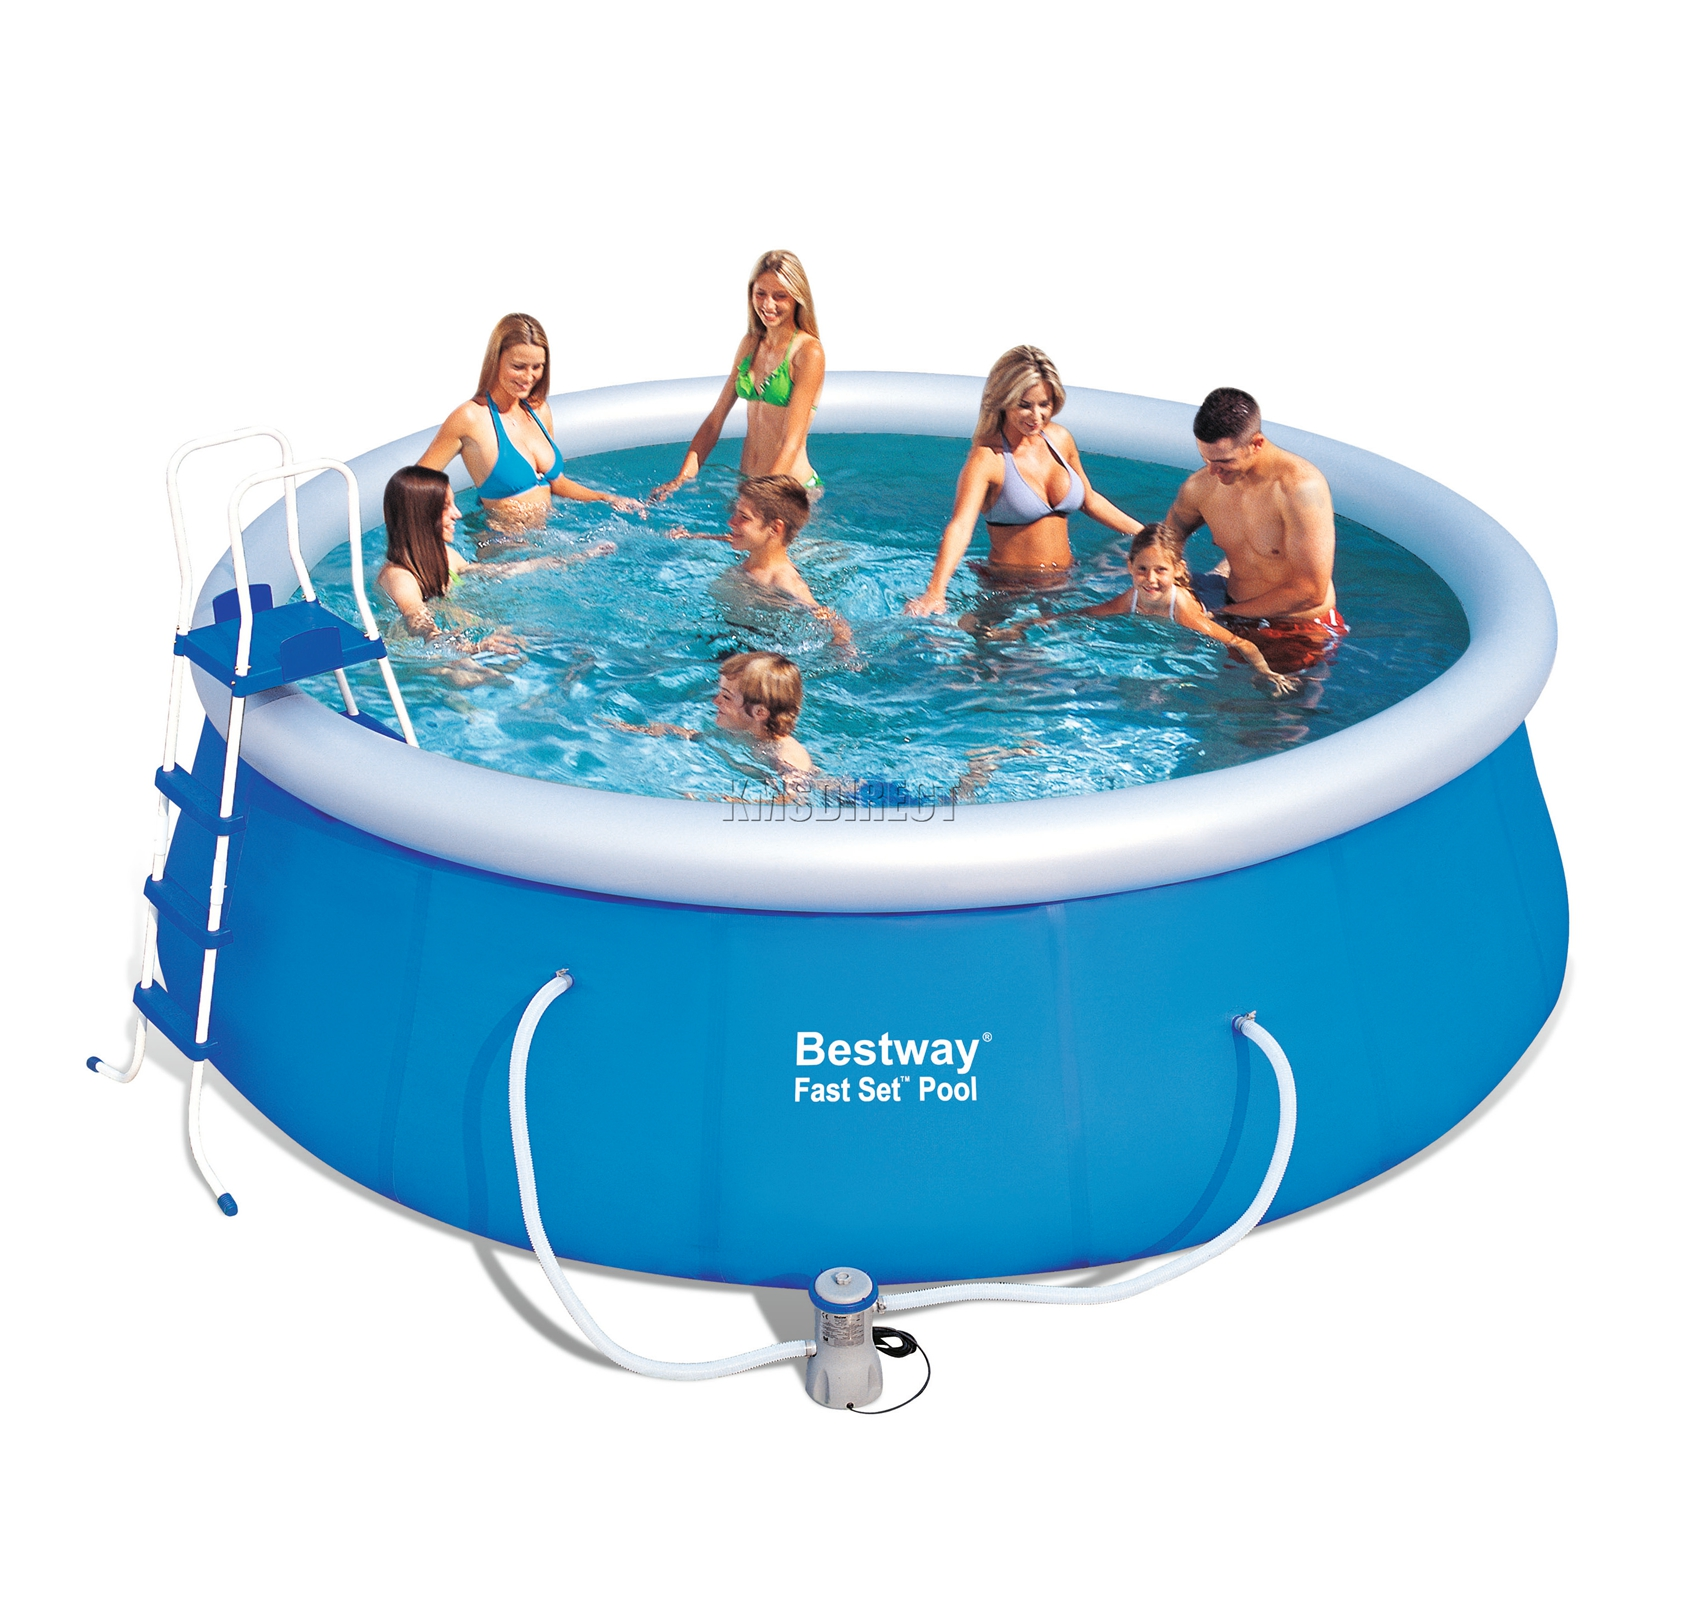 Bestway fast set swimming pool round inflatable 15ft x for Bestway pool obi